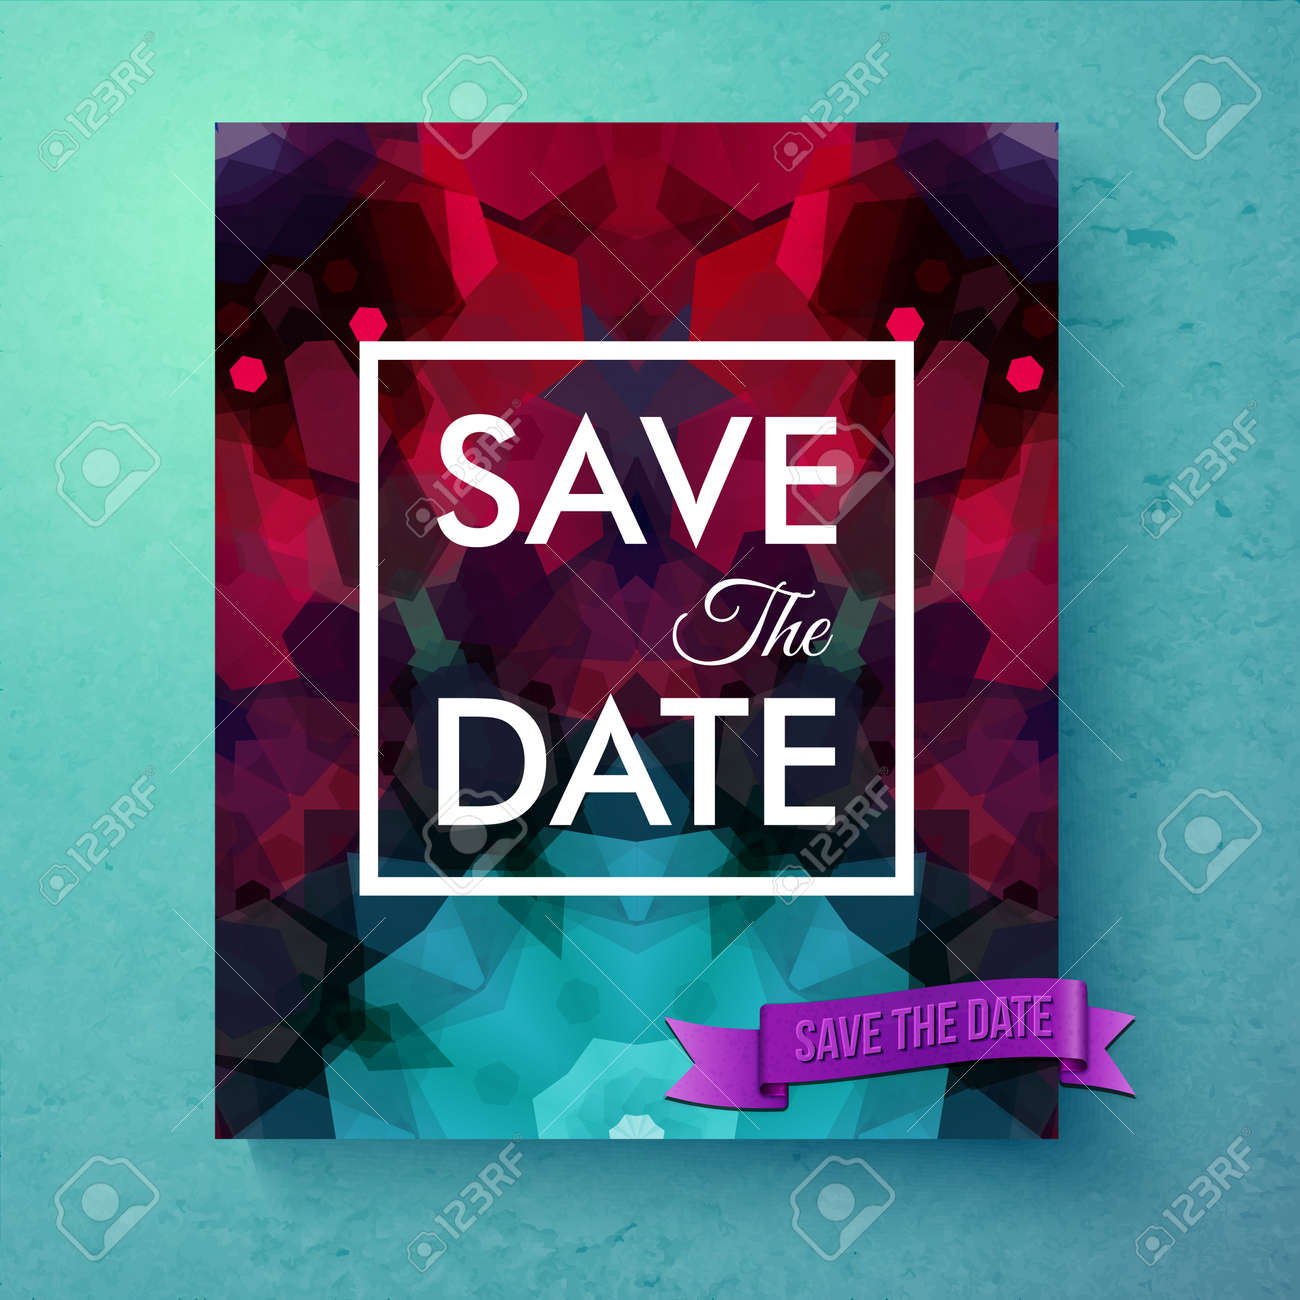 Generic Save The Date Invitation Card Or Announcement Poster